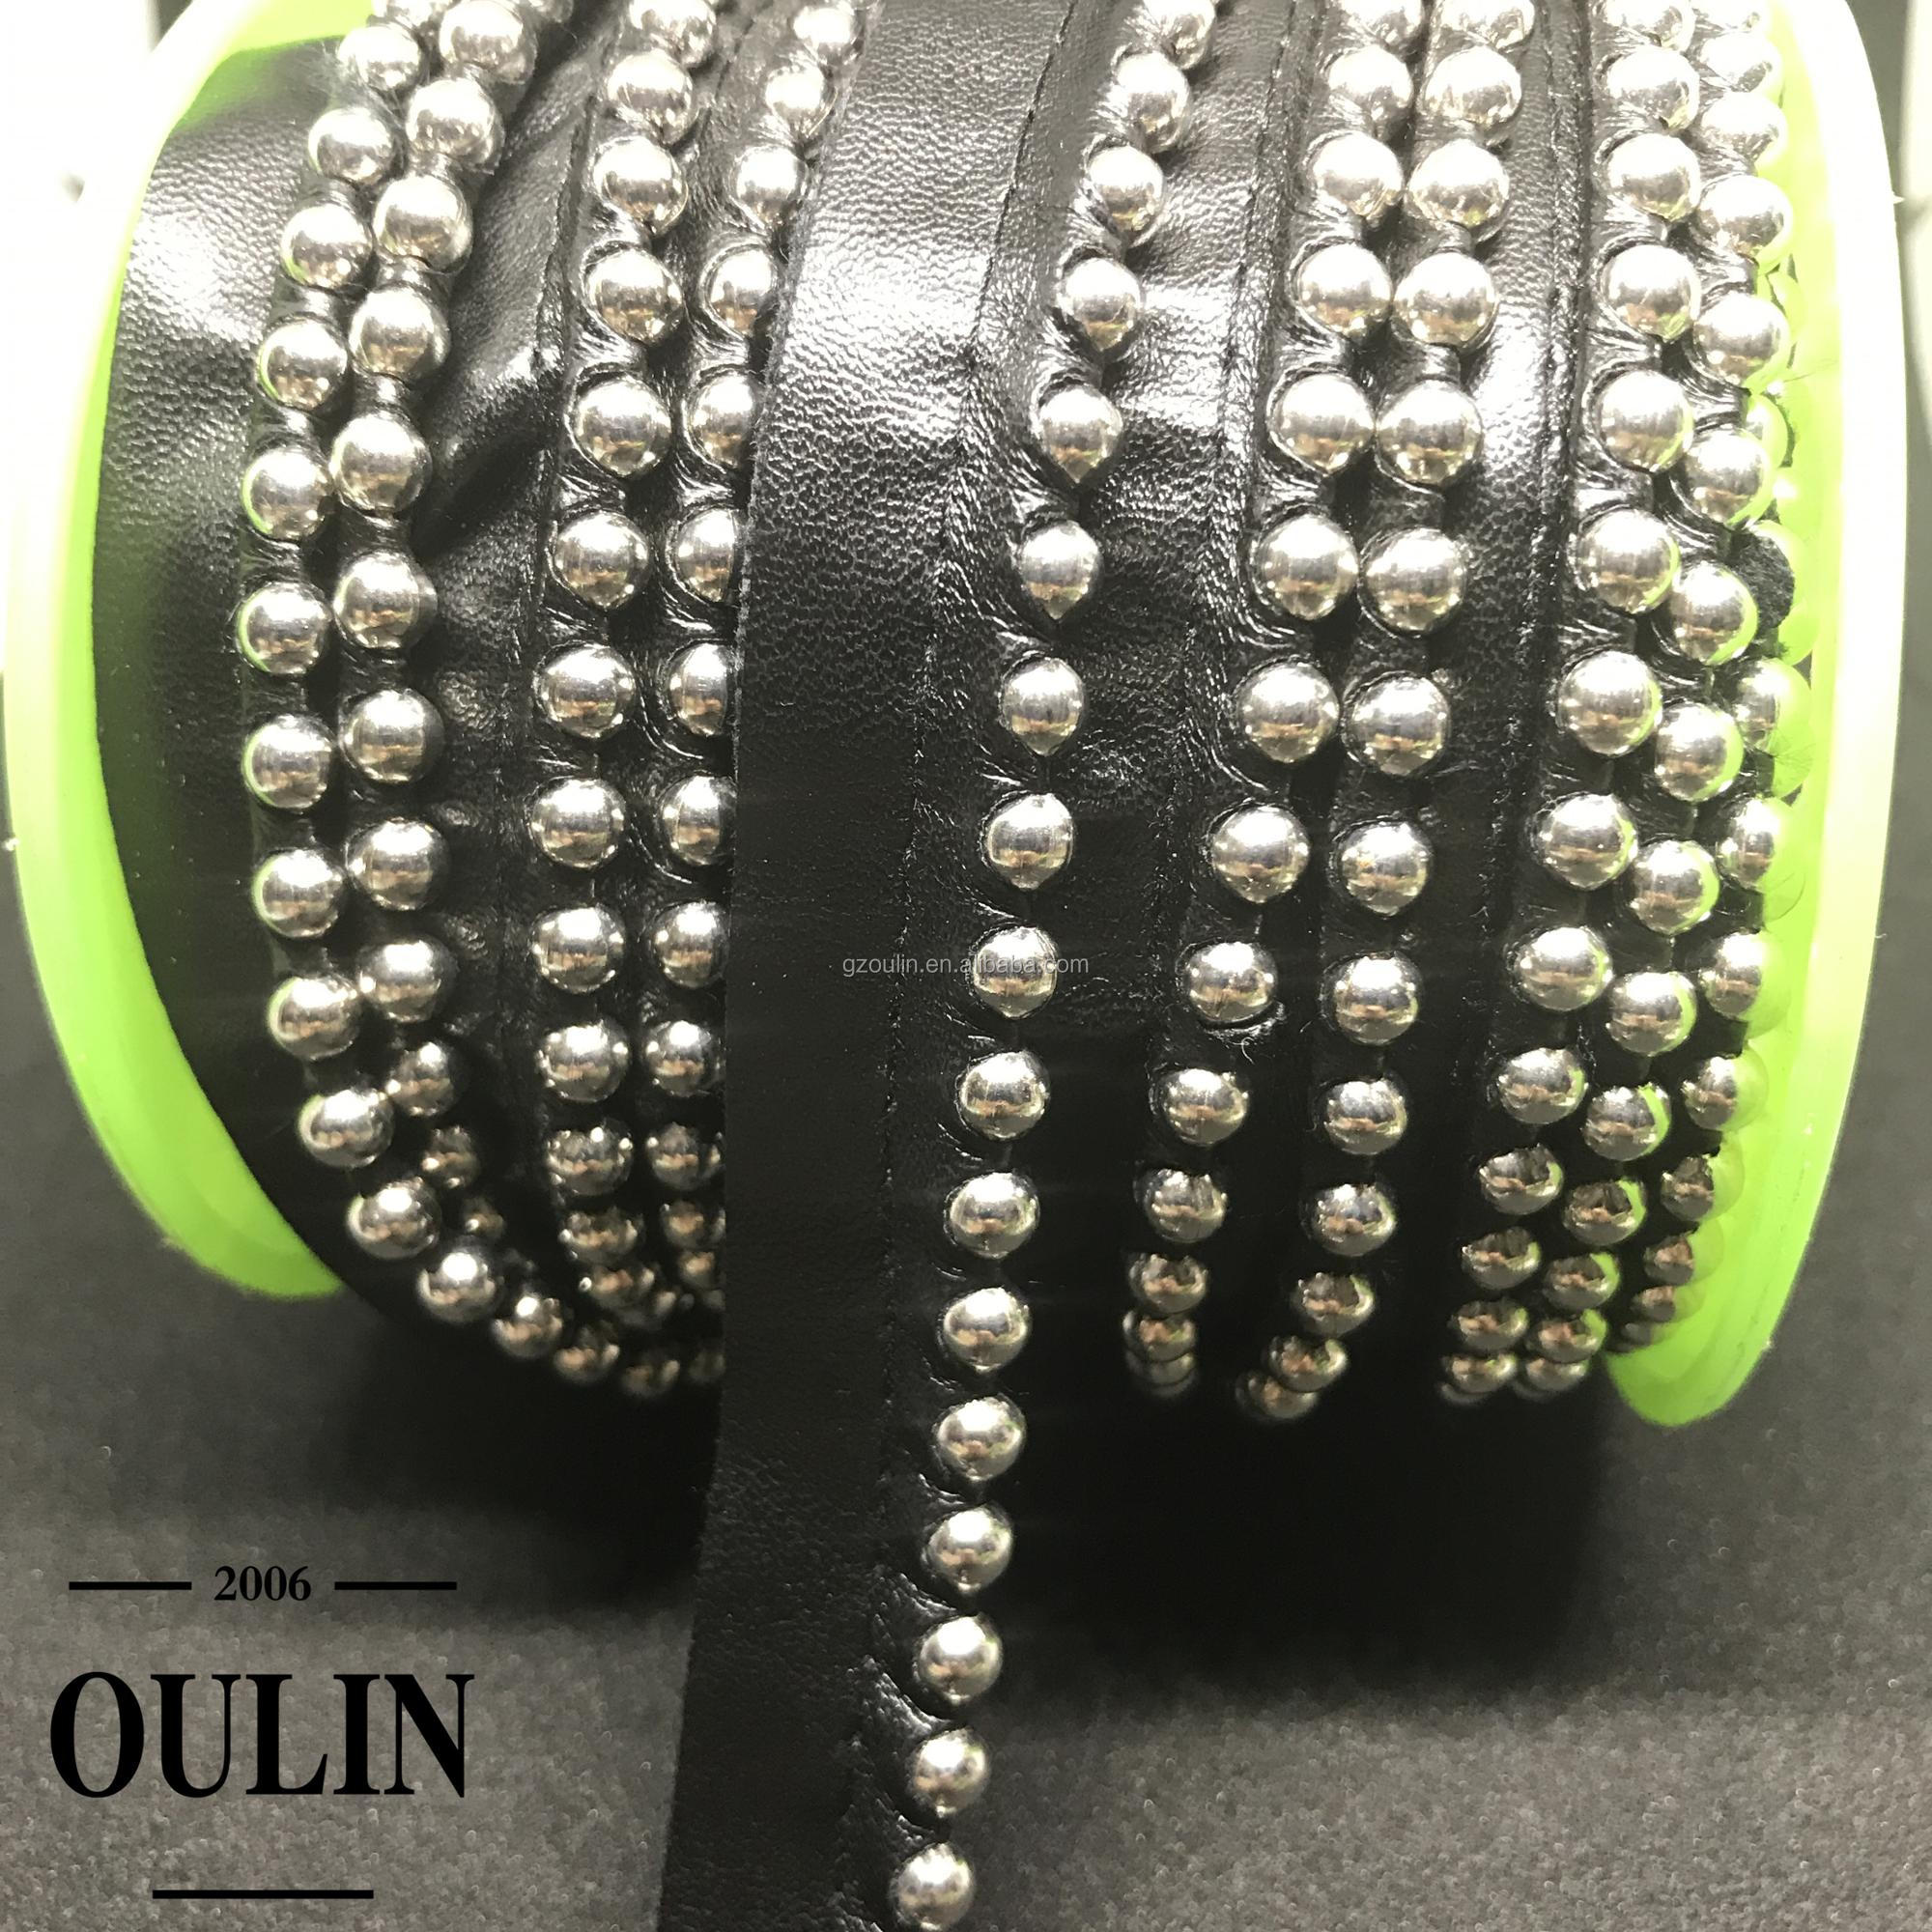 Leather type ball chain lace trim PU type one side ball chain lace trim used on bags and shoes